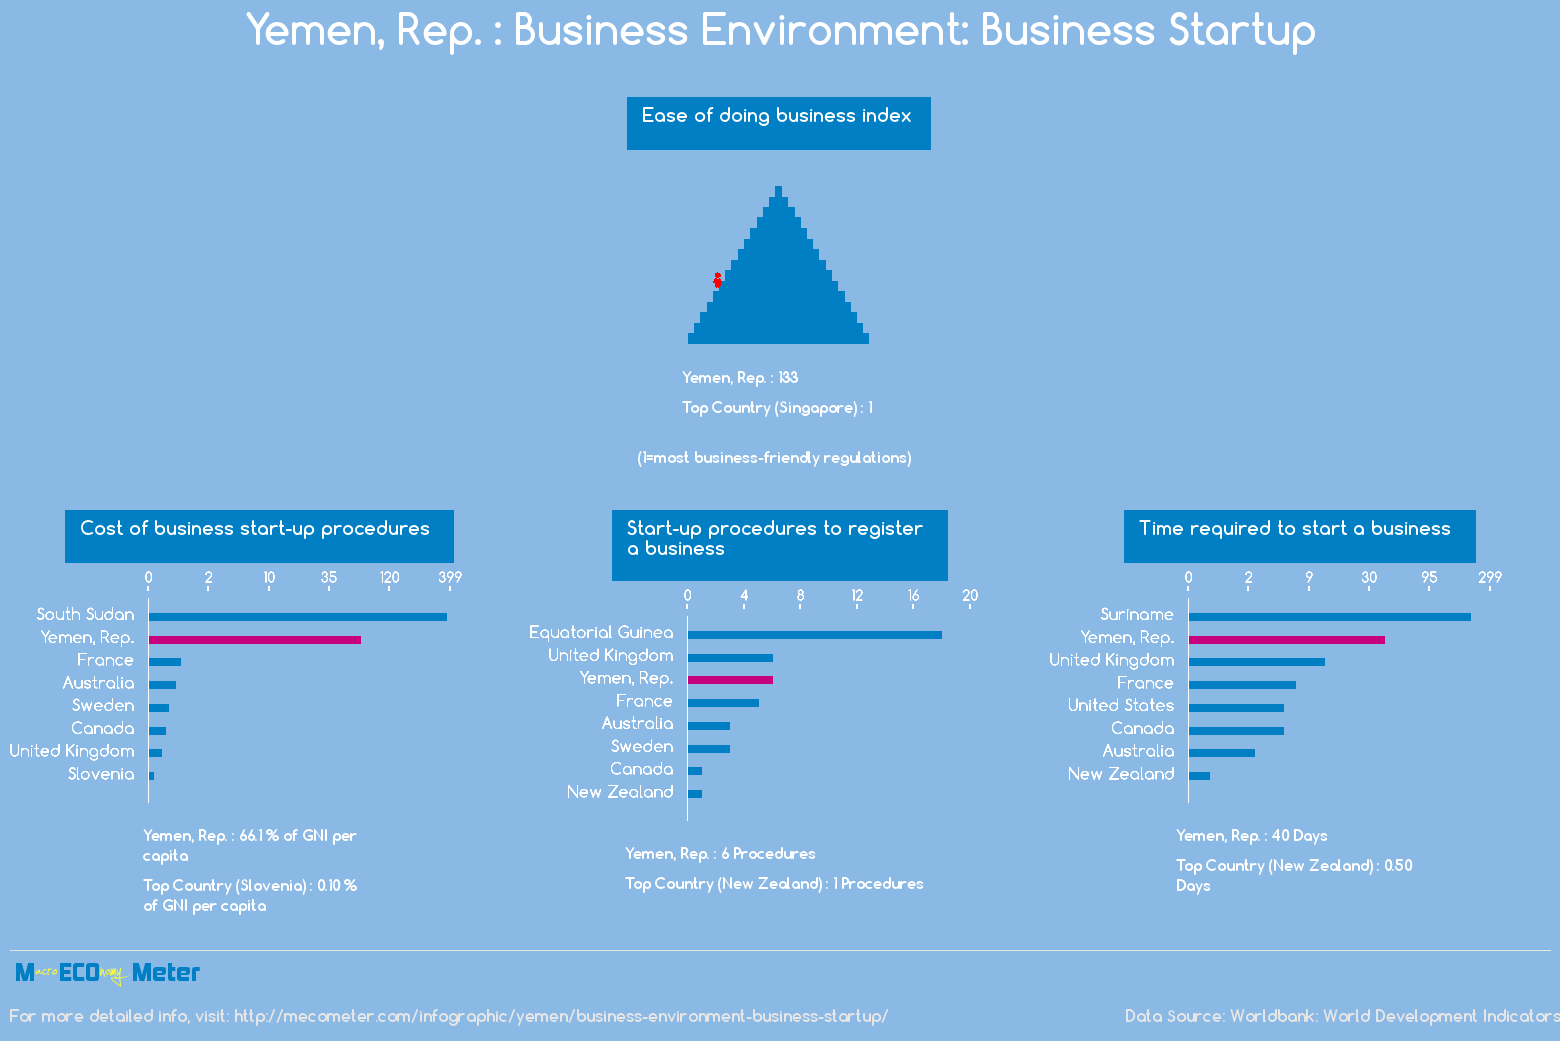 Yemen, Rep. : Business Environment: Business Startup